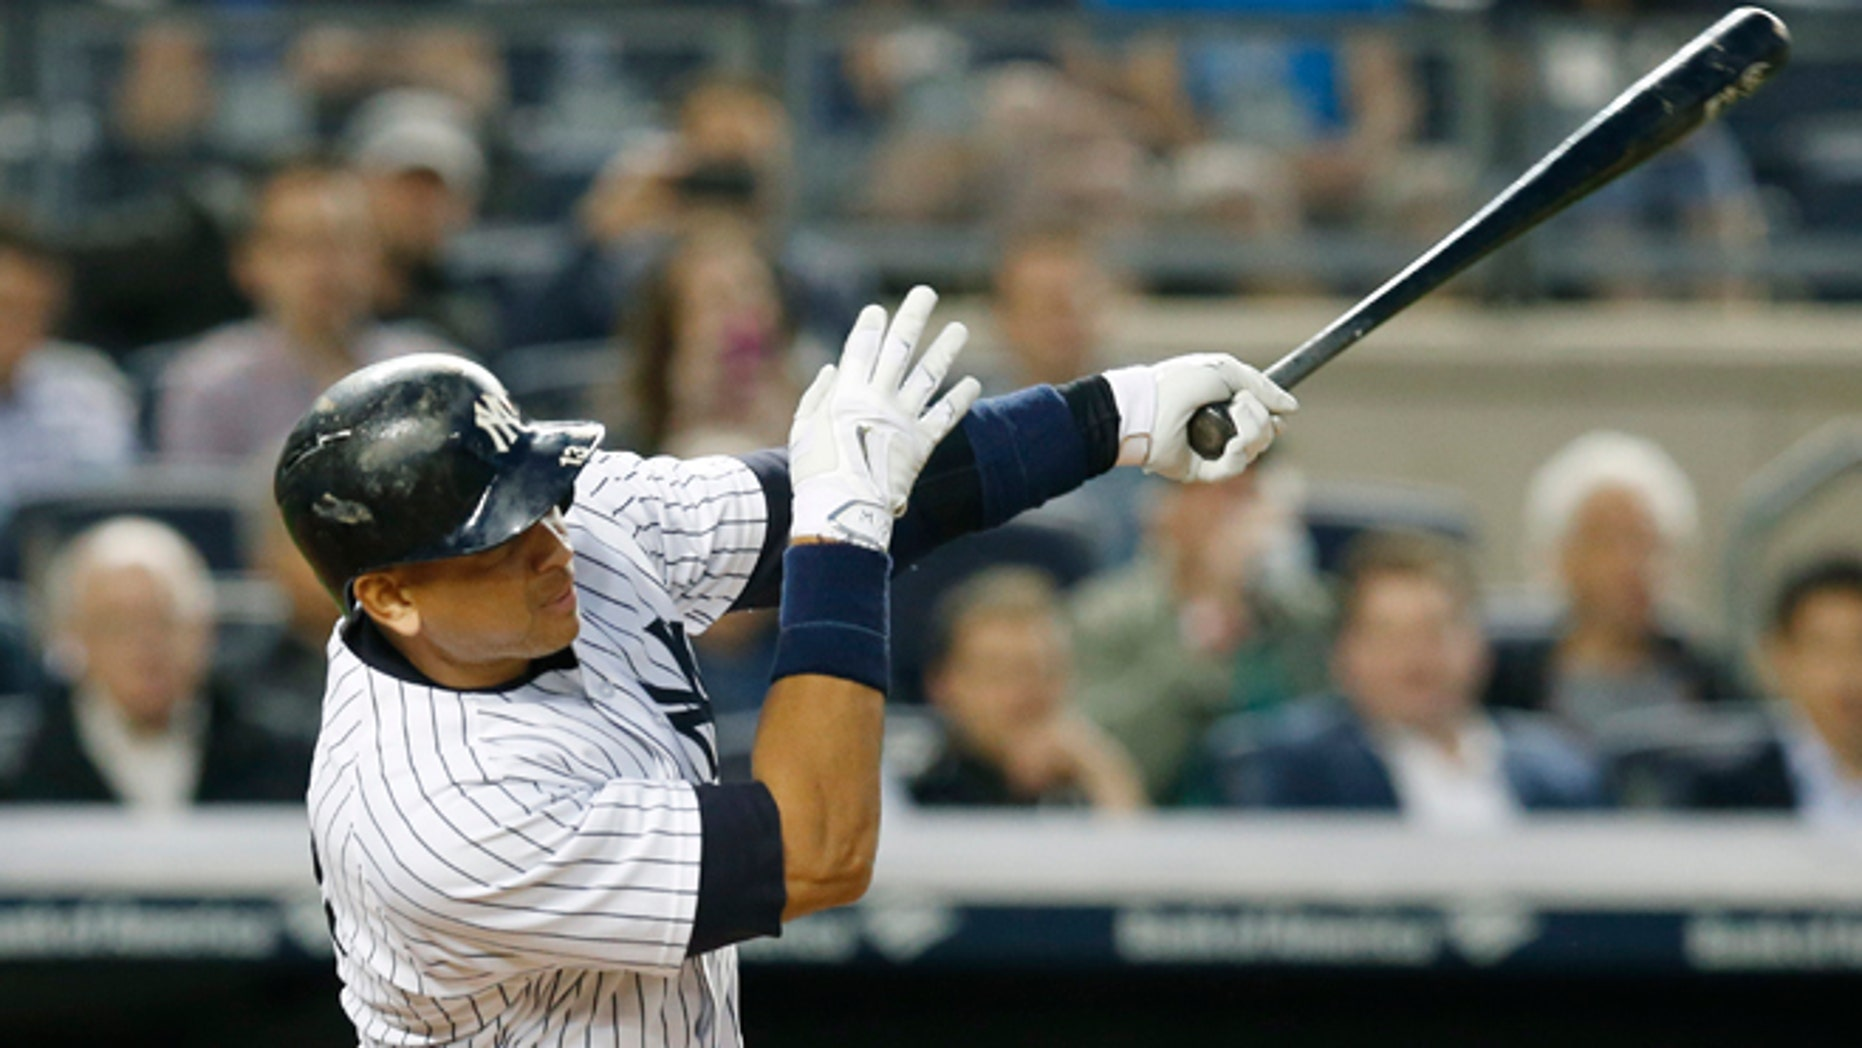 New York Yankees designated hitter Alex Rodriguez hits his 661st home run, surpassing Willie Mays for fourth on baseball's all-time home runs list, in a baseball game against the Baltimore Orioles at Yankee Stadium in New York, Thursday, May 7, 2015.  (AP Photo/Kathy Willens)